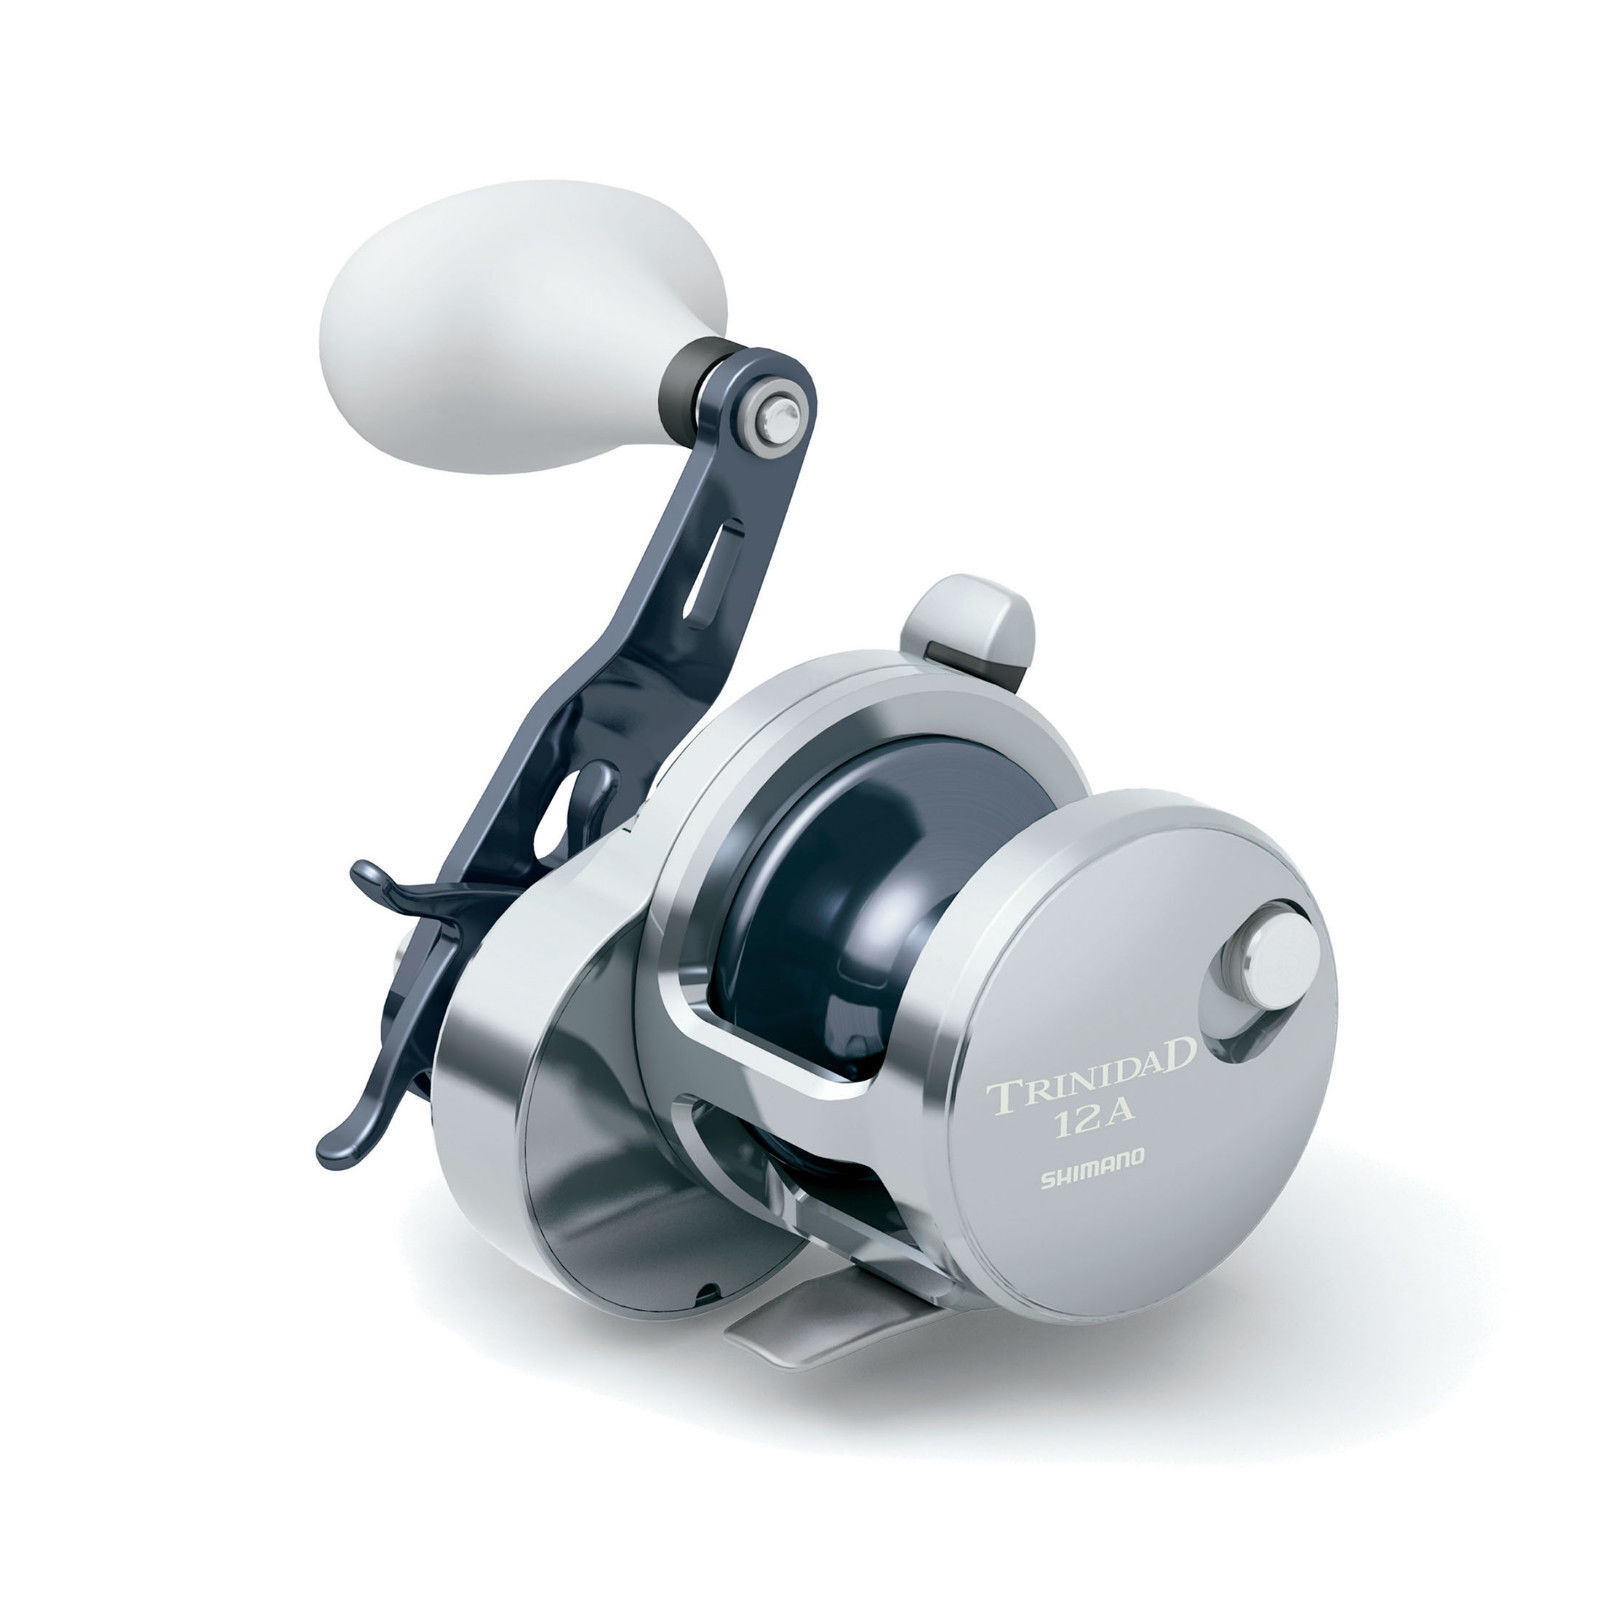 Shimano Trinidad 14A Conventional Multiplier Saltwater Fishing Reel, TN14A